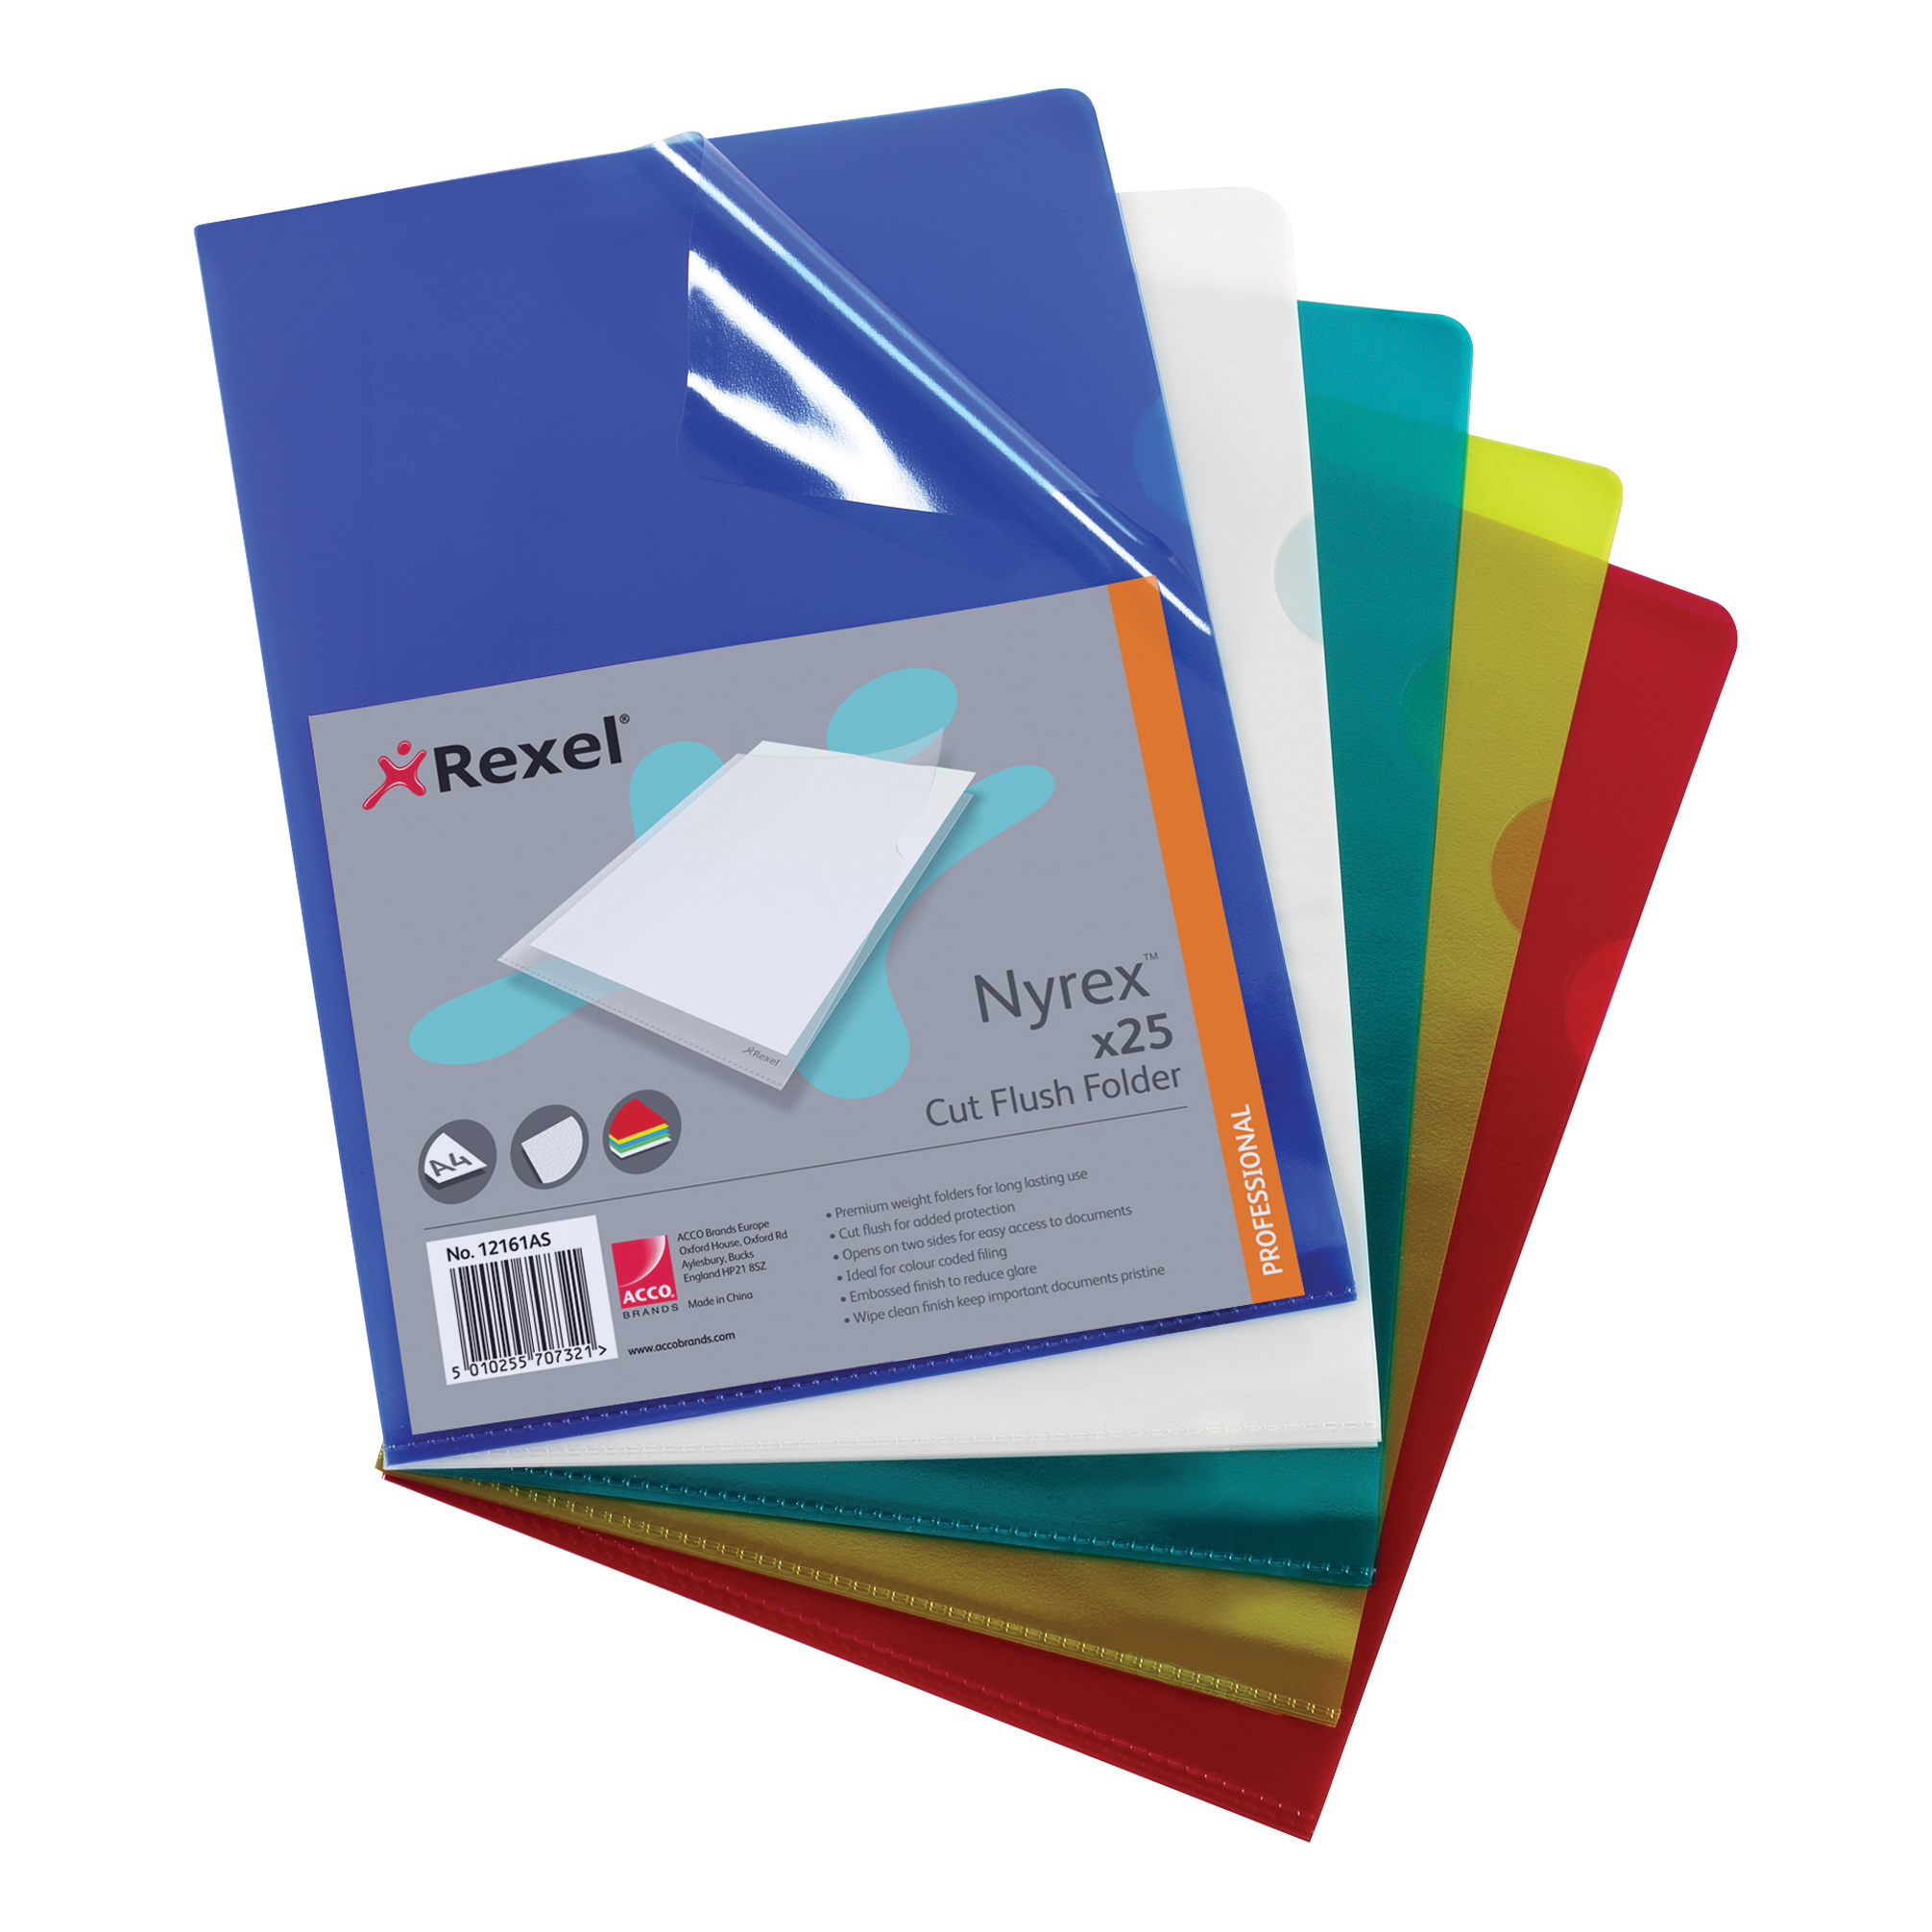 Rexel Nyrex Folder Cut Flush A4 Green Ref 12161GN Pack 25